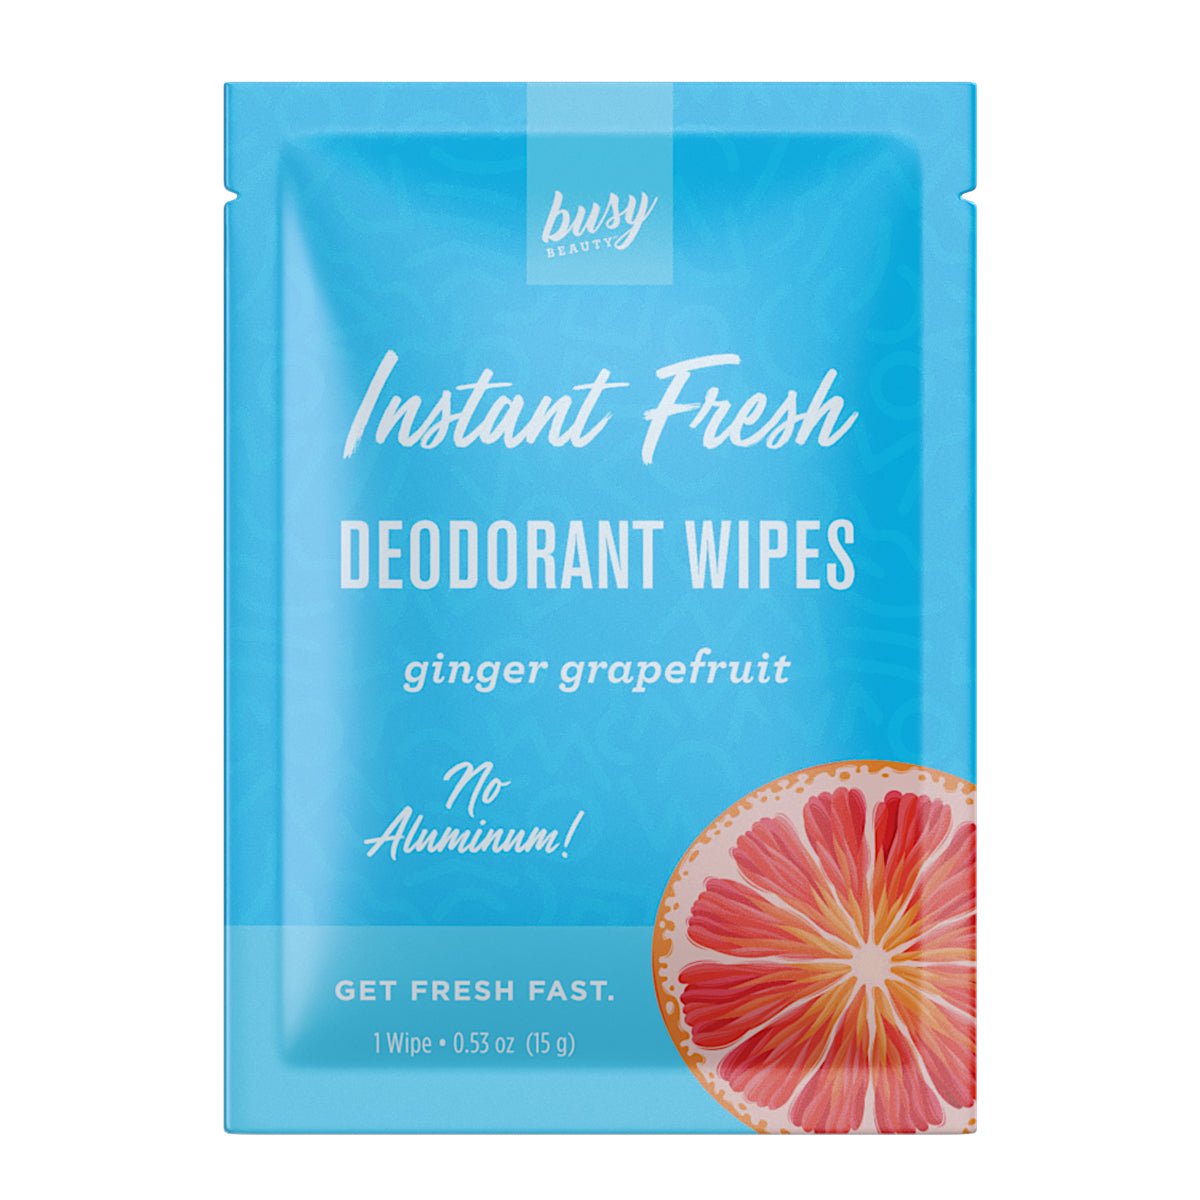 Busy Beauty Aluminum Free Deodorant Wipe Ginger Grapefruit - Travel PAKT